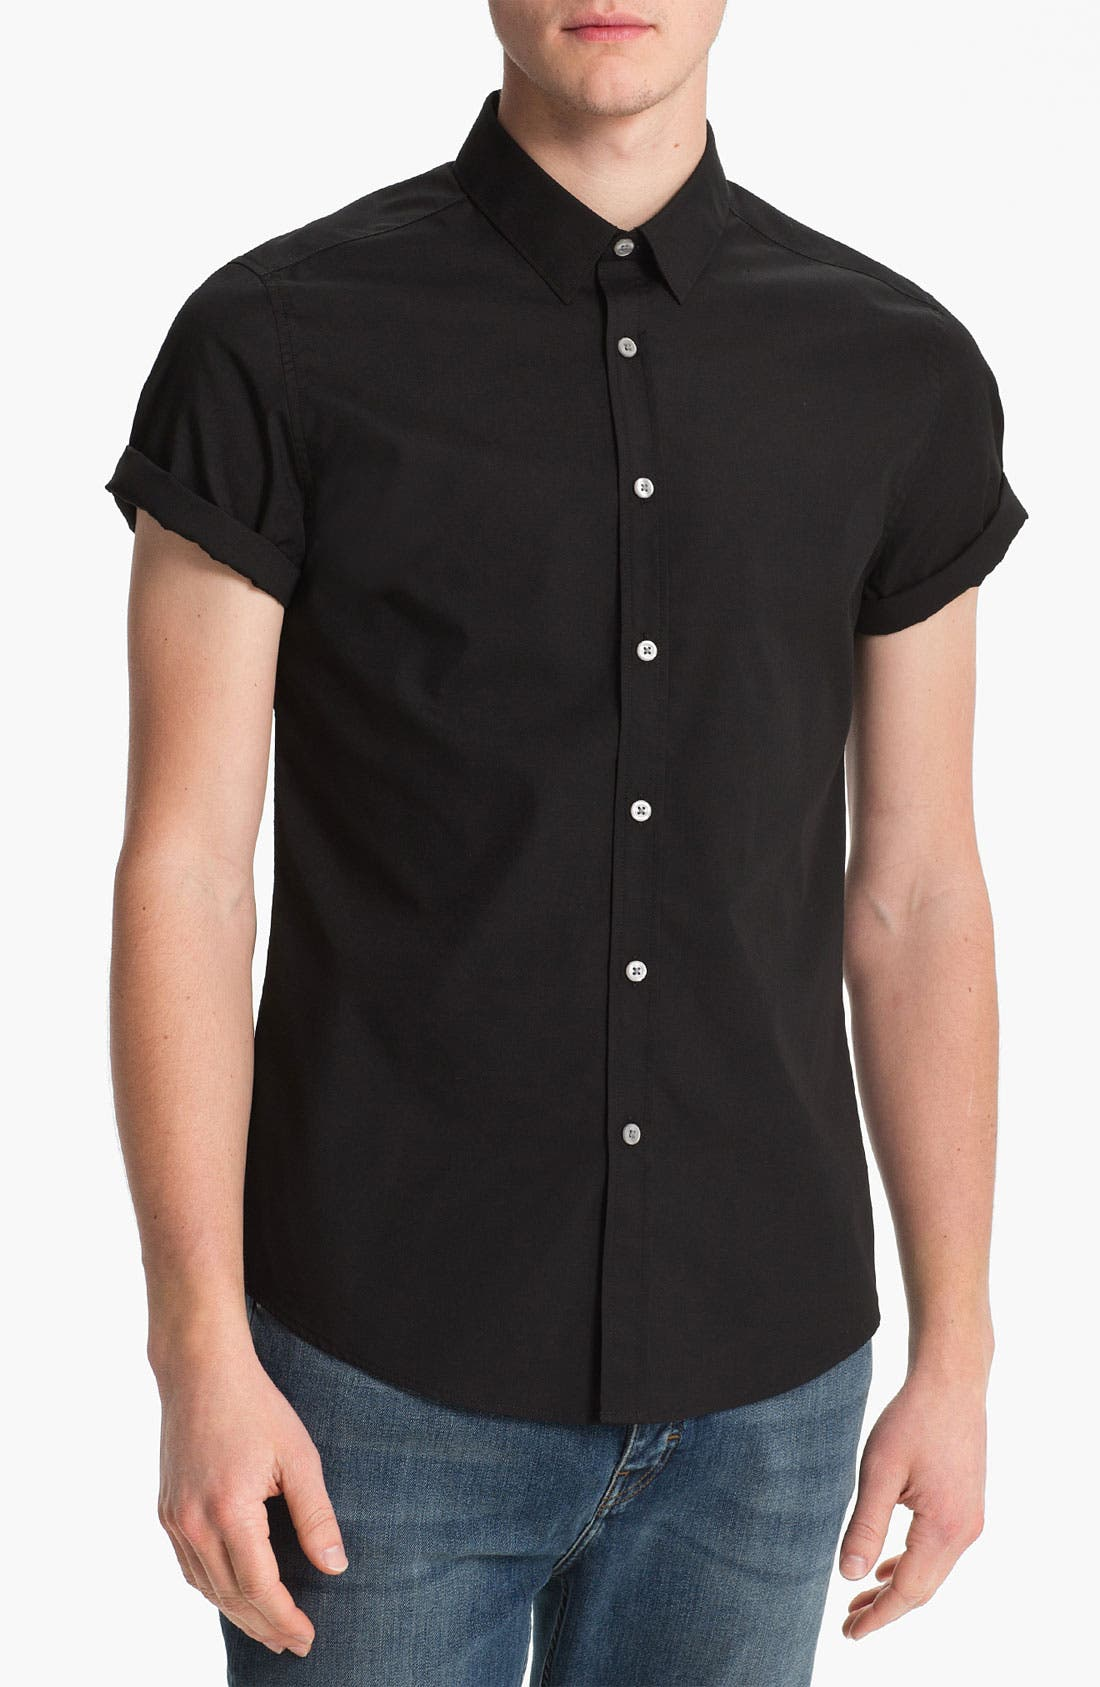 Main Image - Topman 'Smart' Short Sleeve Shirt